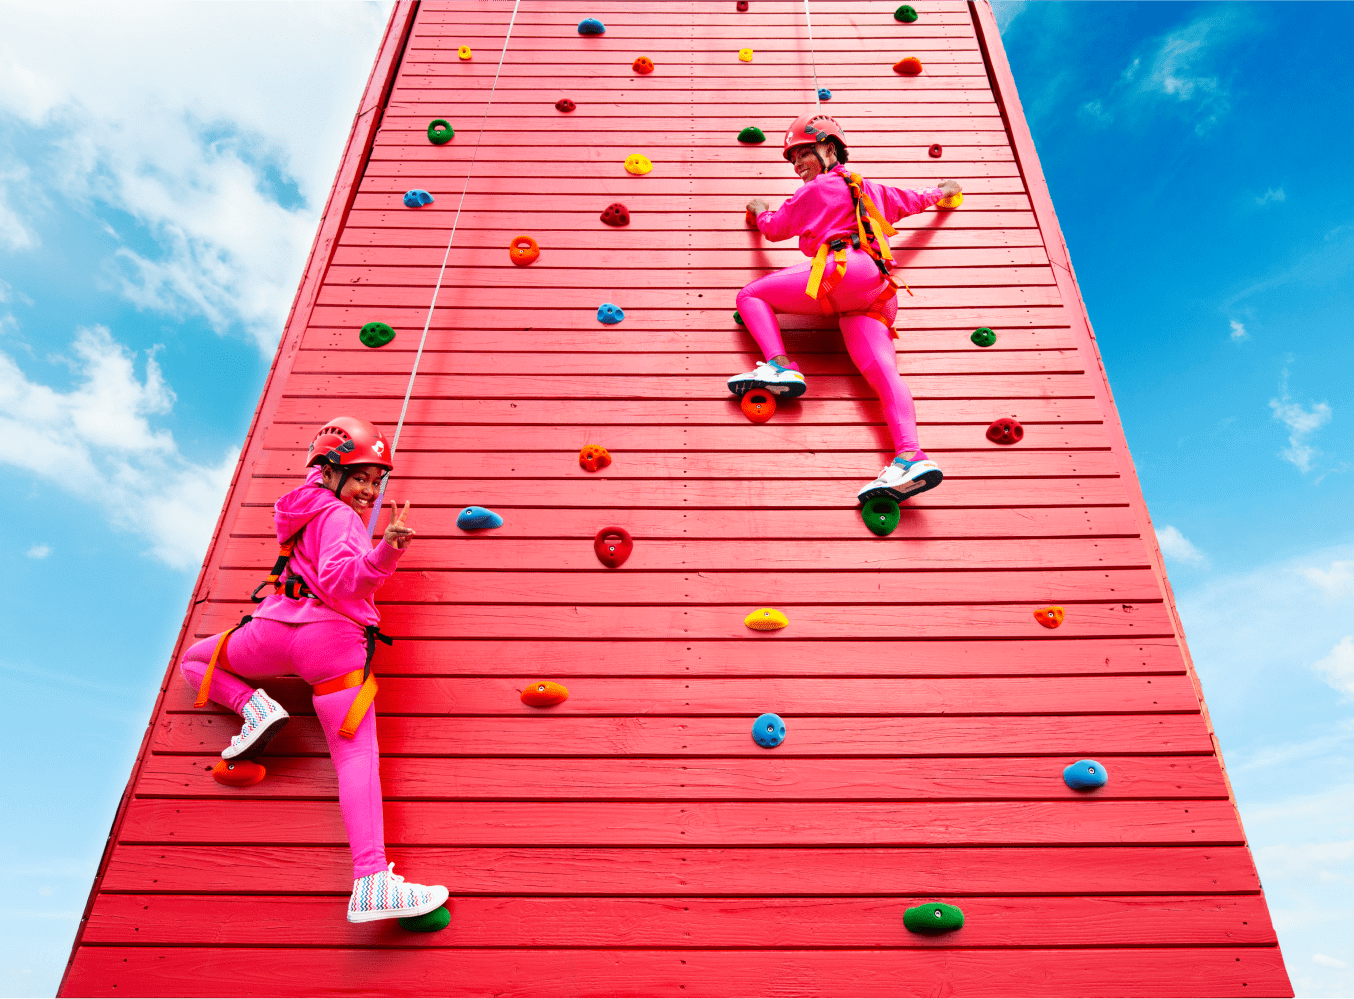 People climbing on a red climbing wall